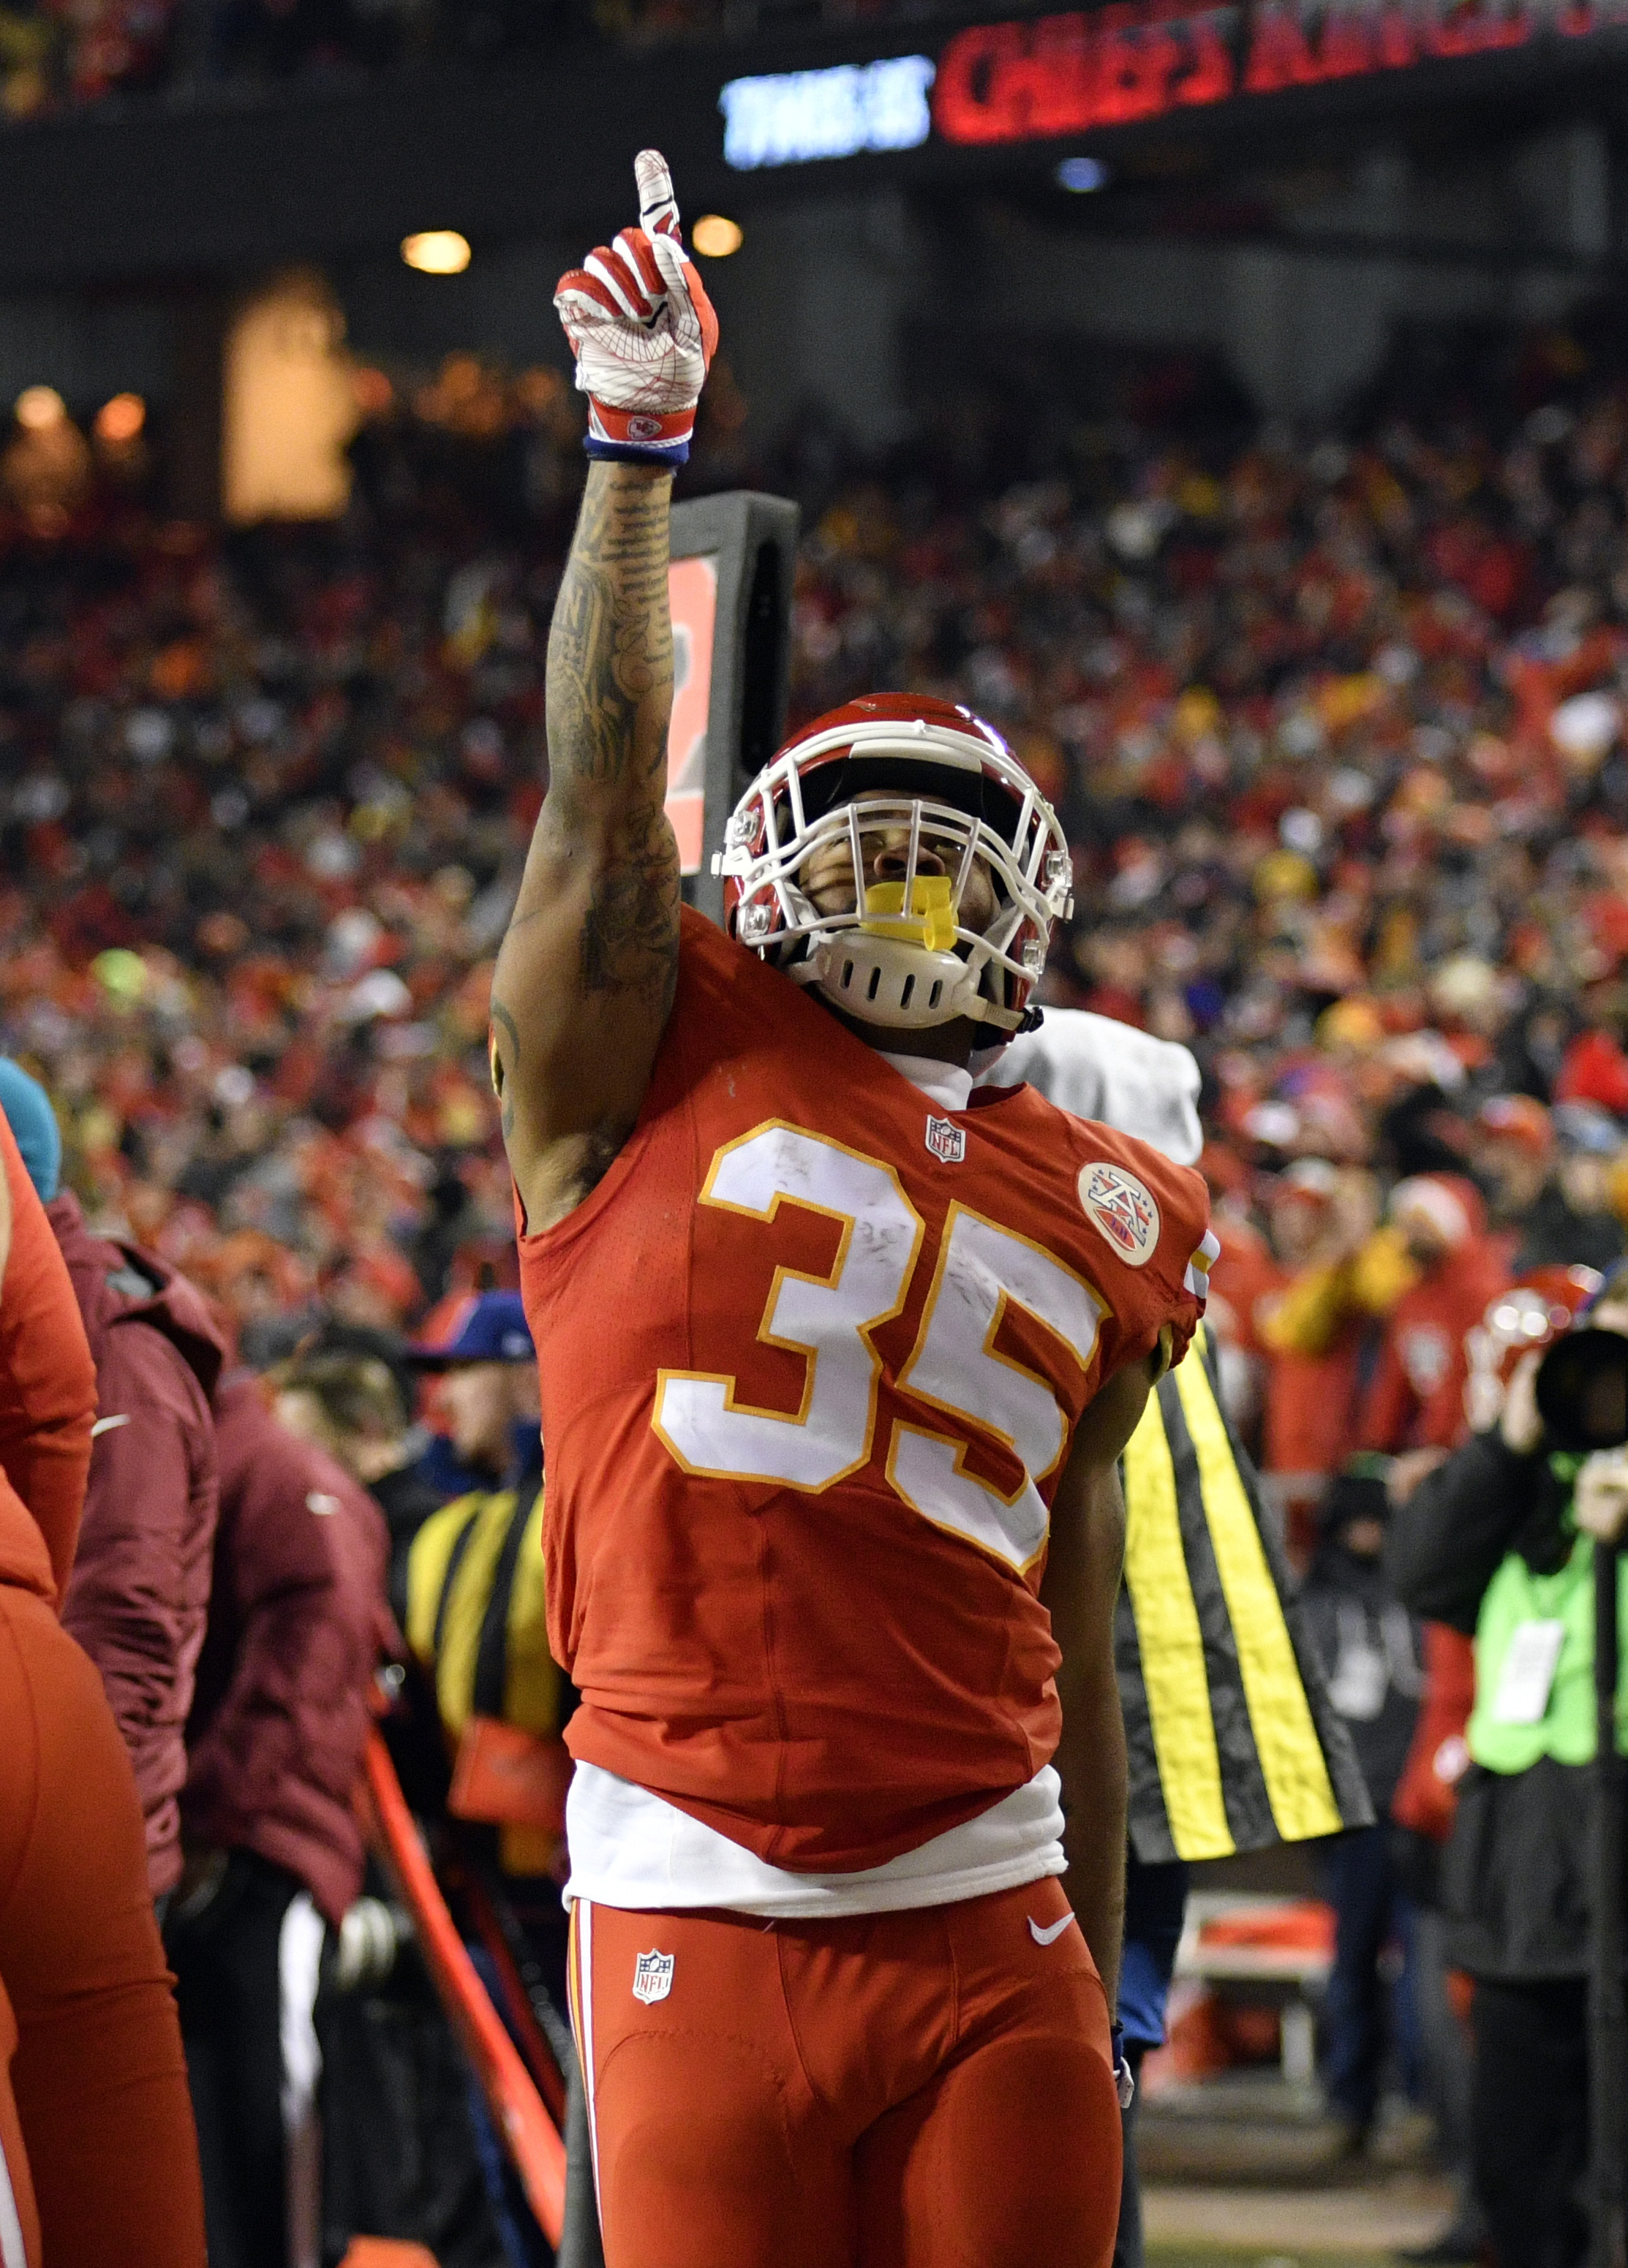 Kansas City Chiefs running back Charcandrick West (35) celebrates his touchdown during the first half of an NFL football game against the Oakland Raiders in Kansas City, Mo., Thursday, Dec. 8, 2016. (AP Photo/Ed Zurga)